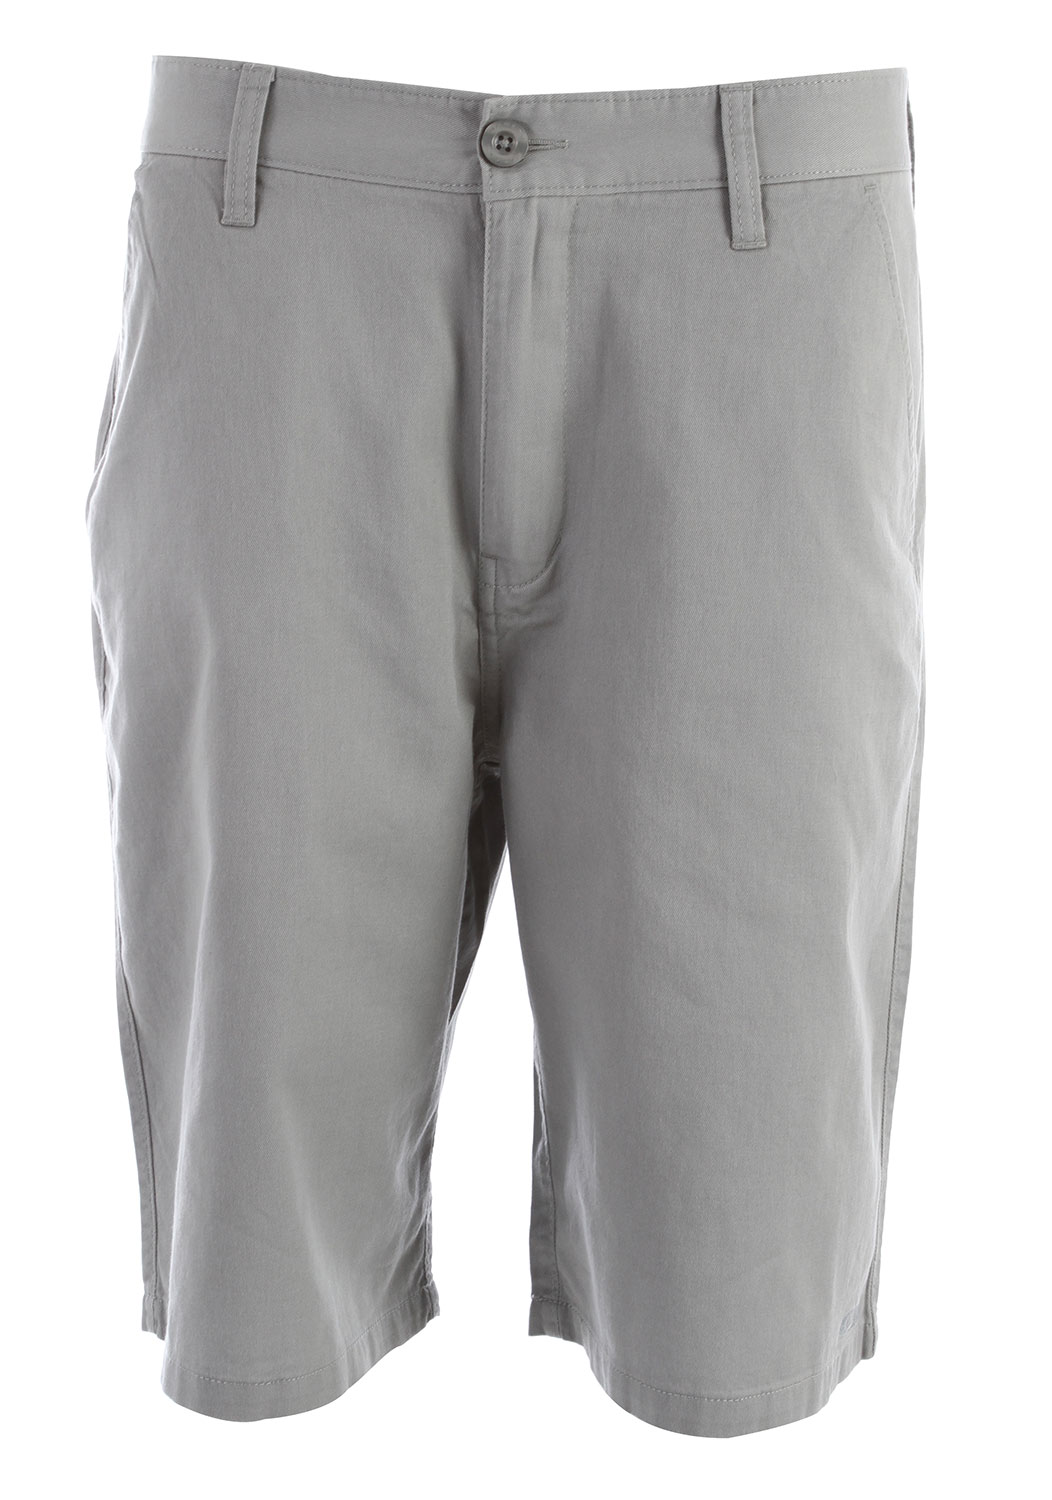 Twill short with button closure, zip fly, front logo embroidery and back woven label.Key Features of the Oakley Represent Shorts: 100% cotton Regular fit - $40.00